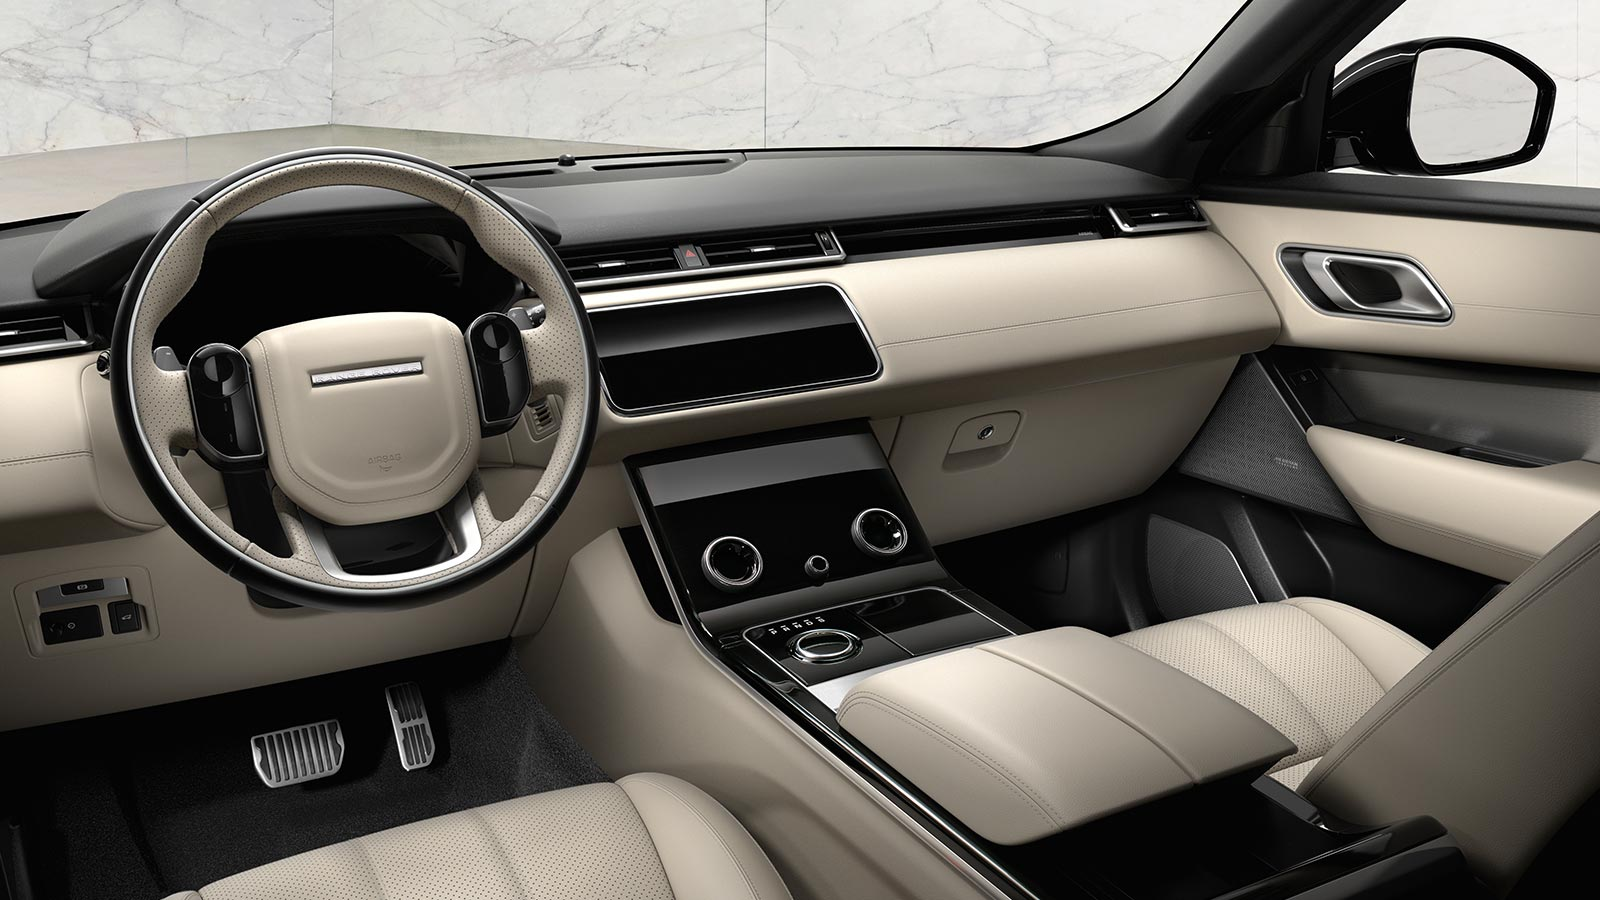 Range Rover Velar Key Features Land Rover